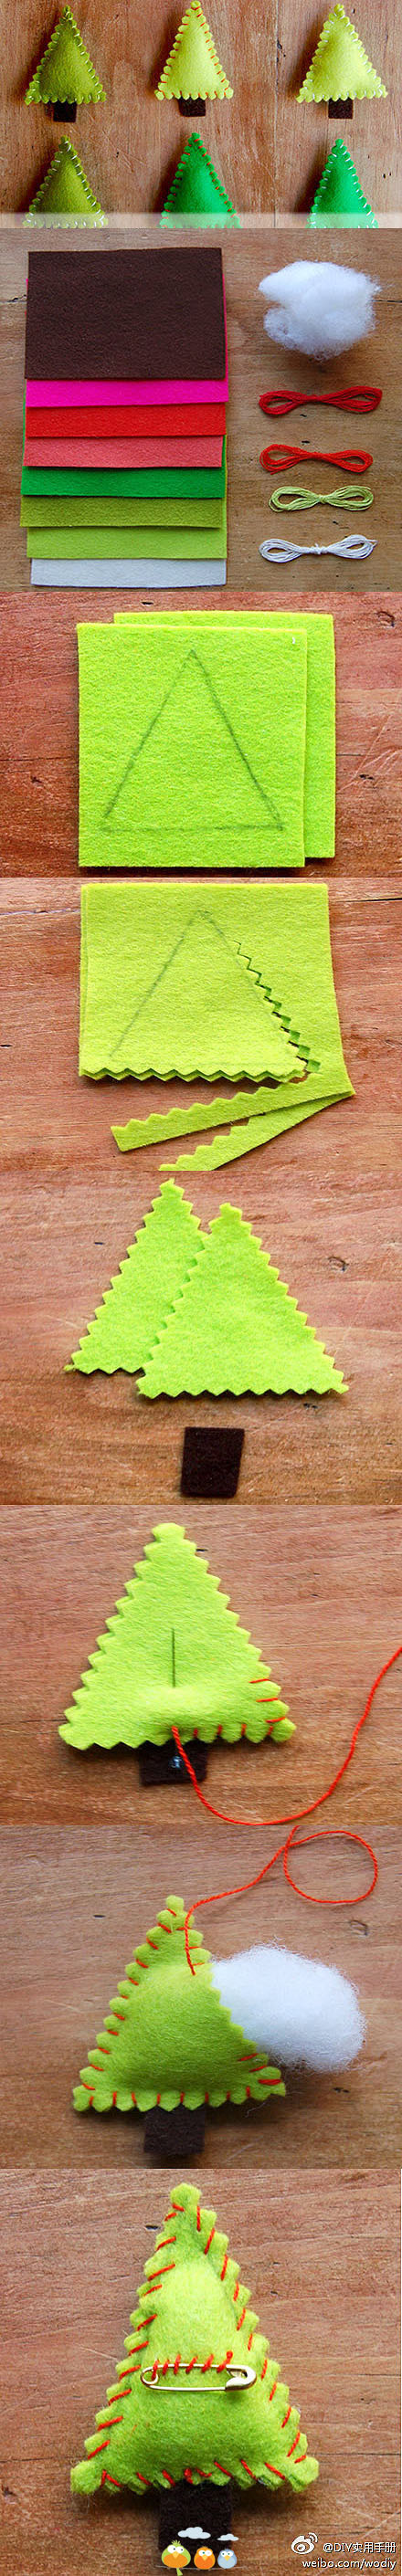 felt Christmas tree decoration